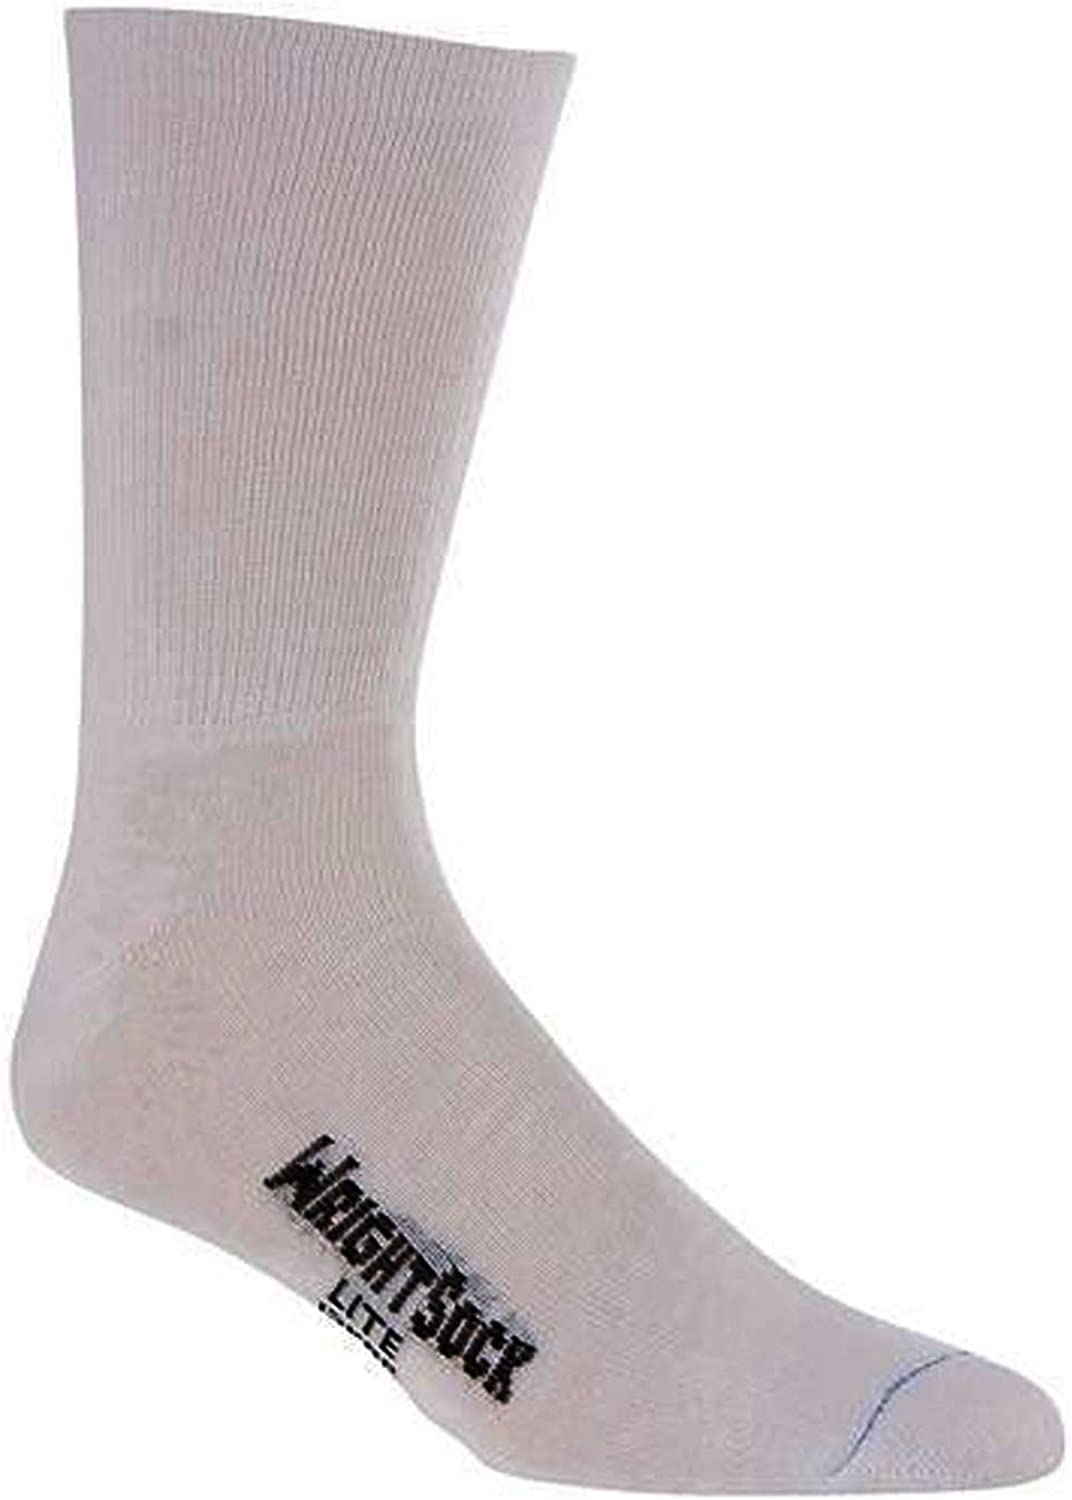 WrightSock 'Anti-Blister' Double Layer RUNNING Lite Crew